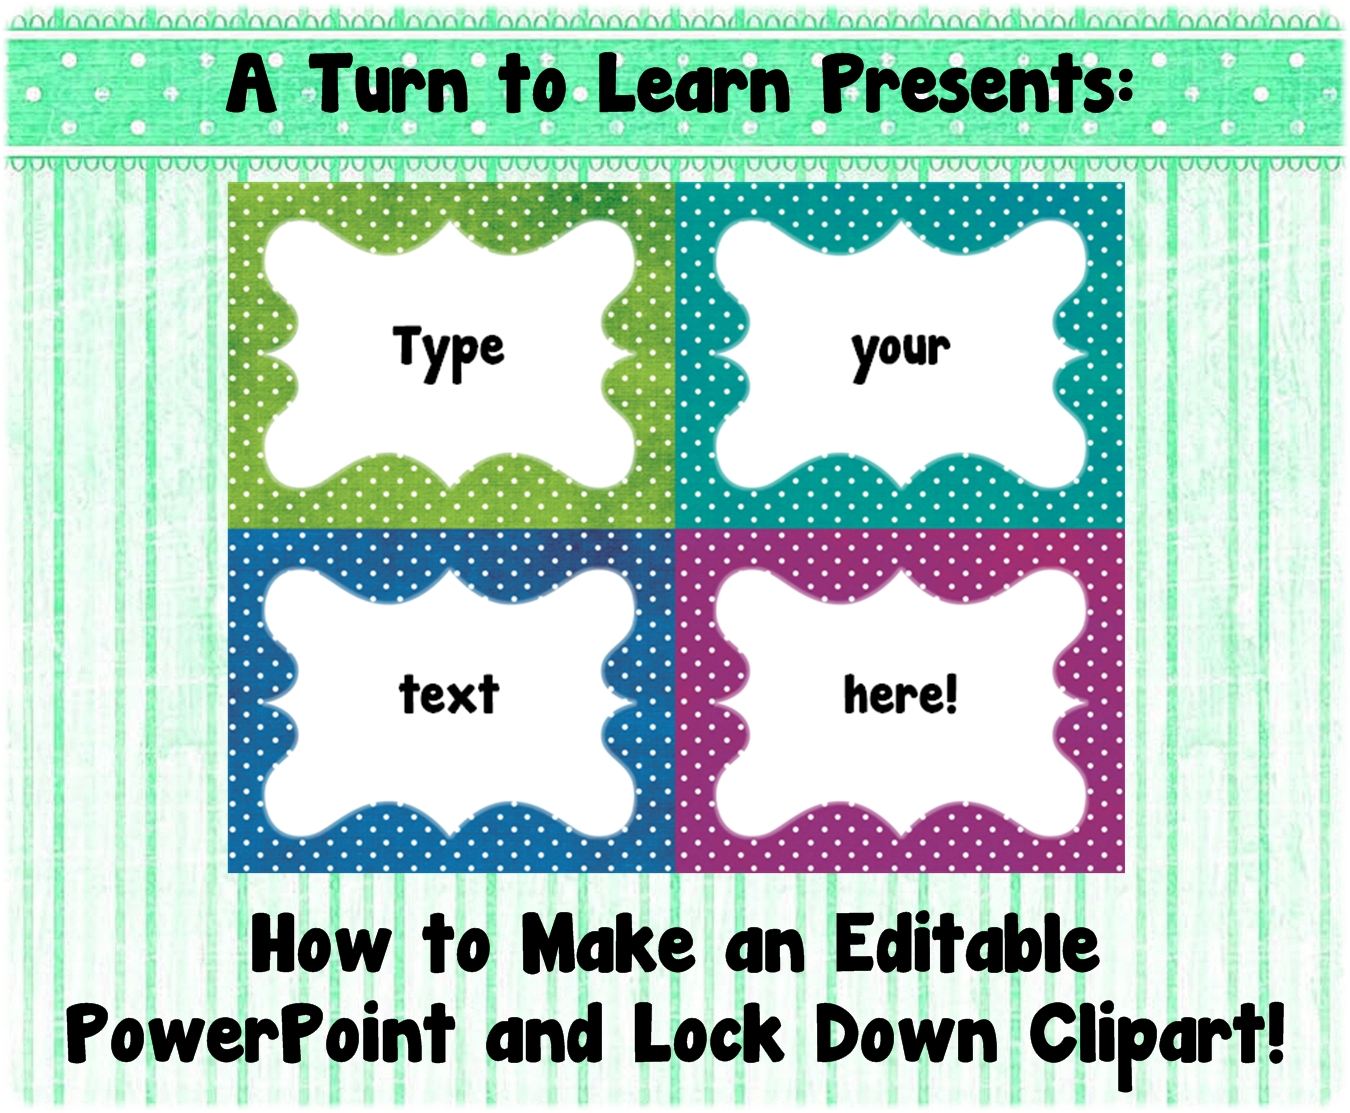 A Turn to Learn: How to Make an Editable PowerPoint and Lock Down ...